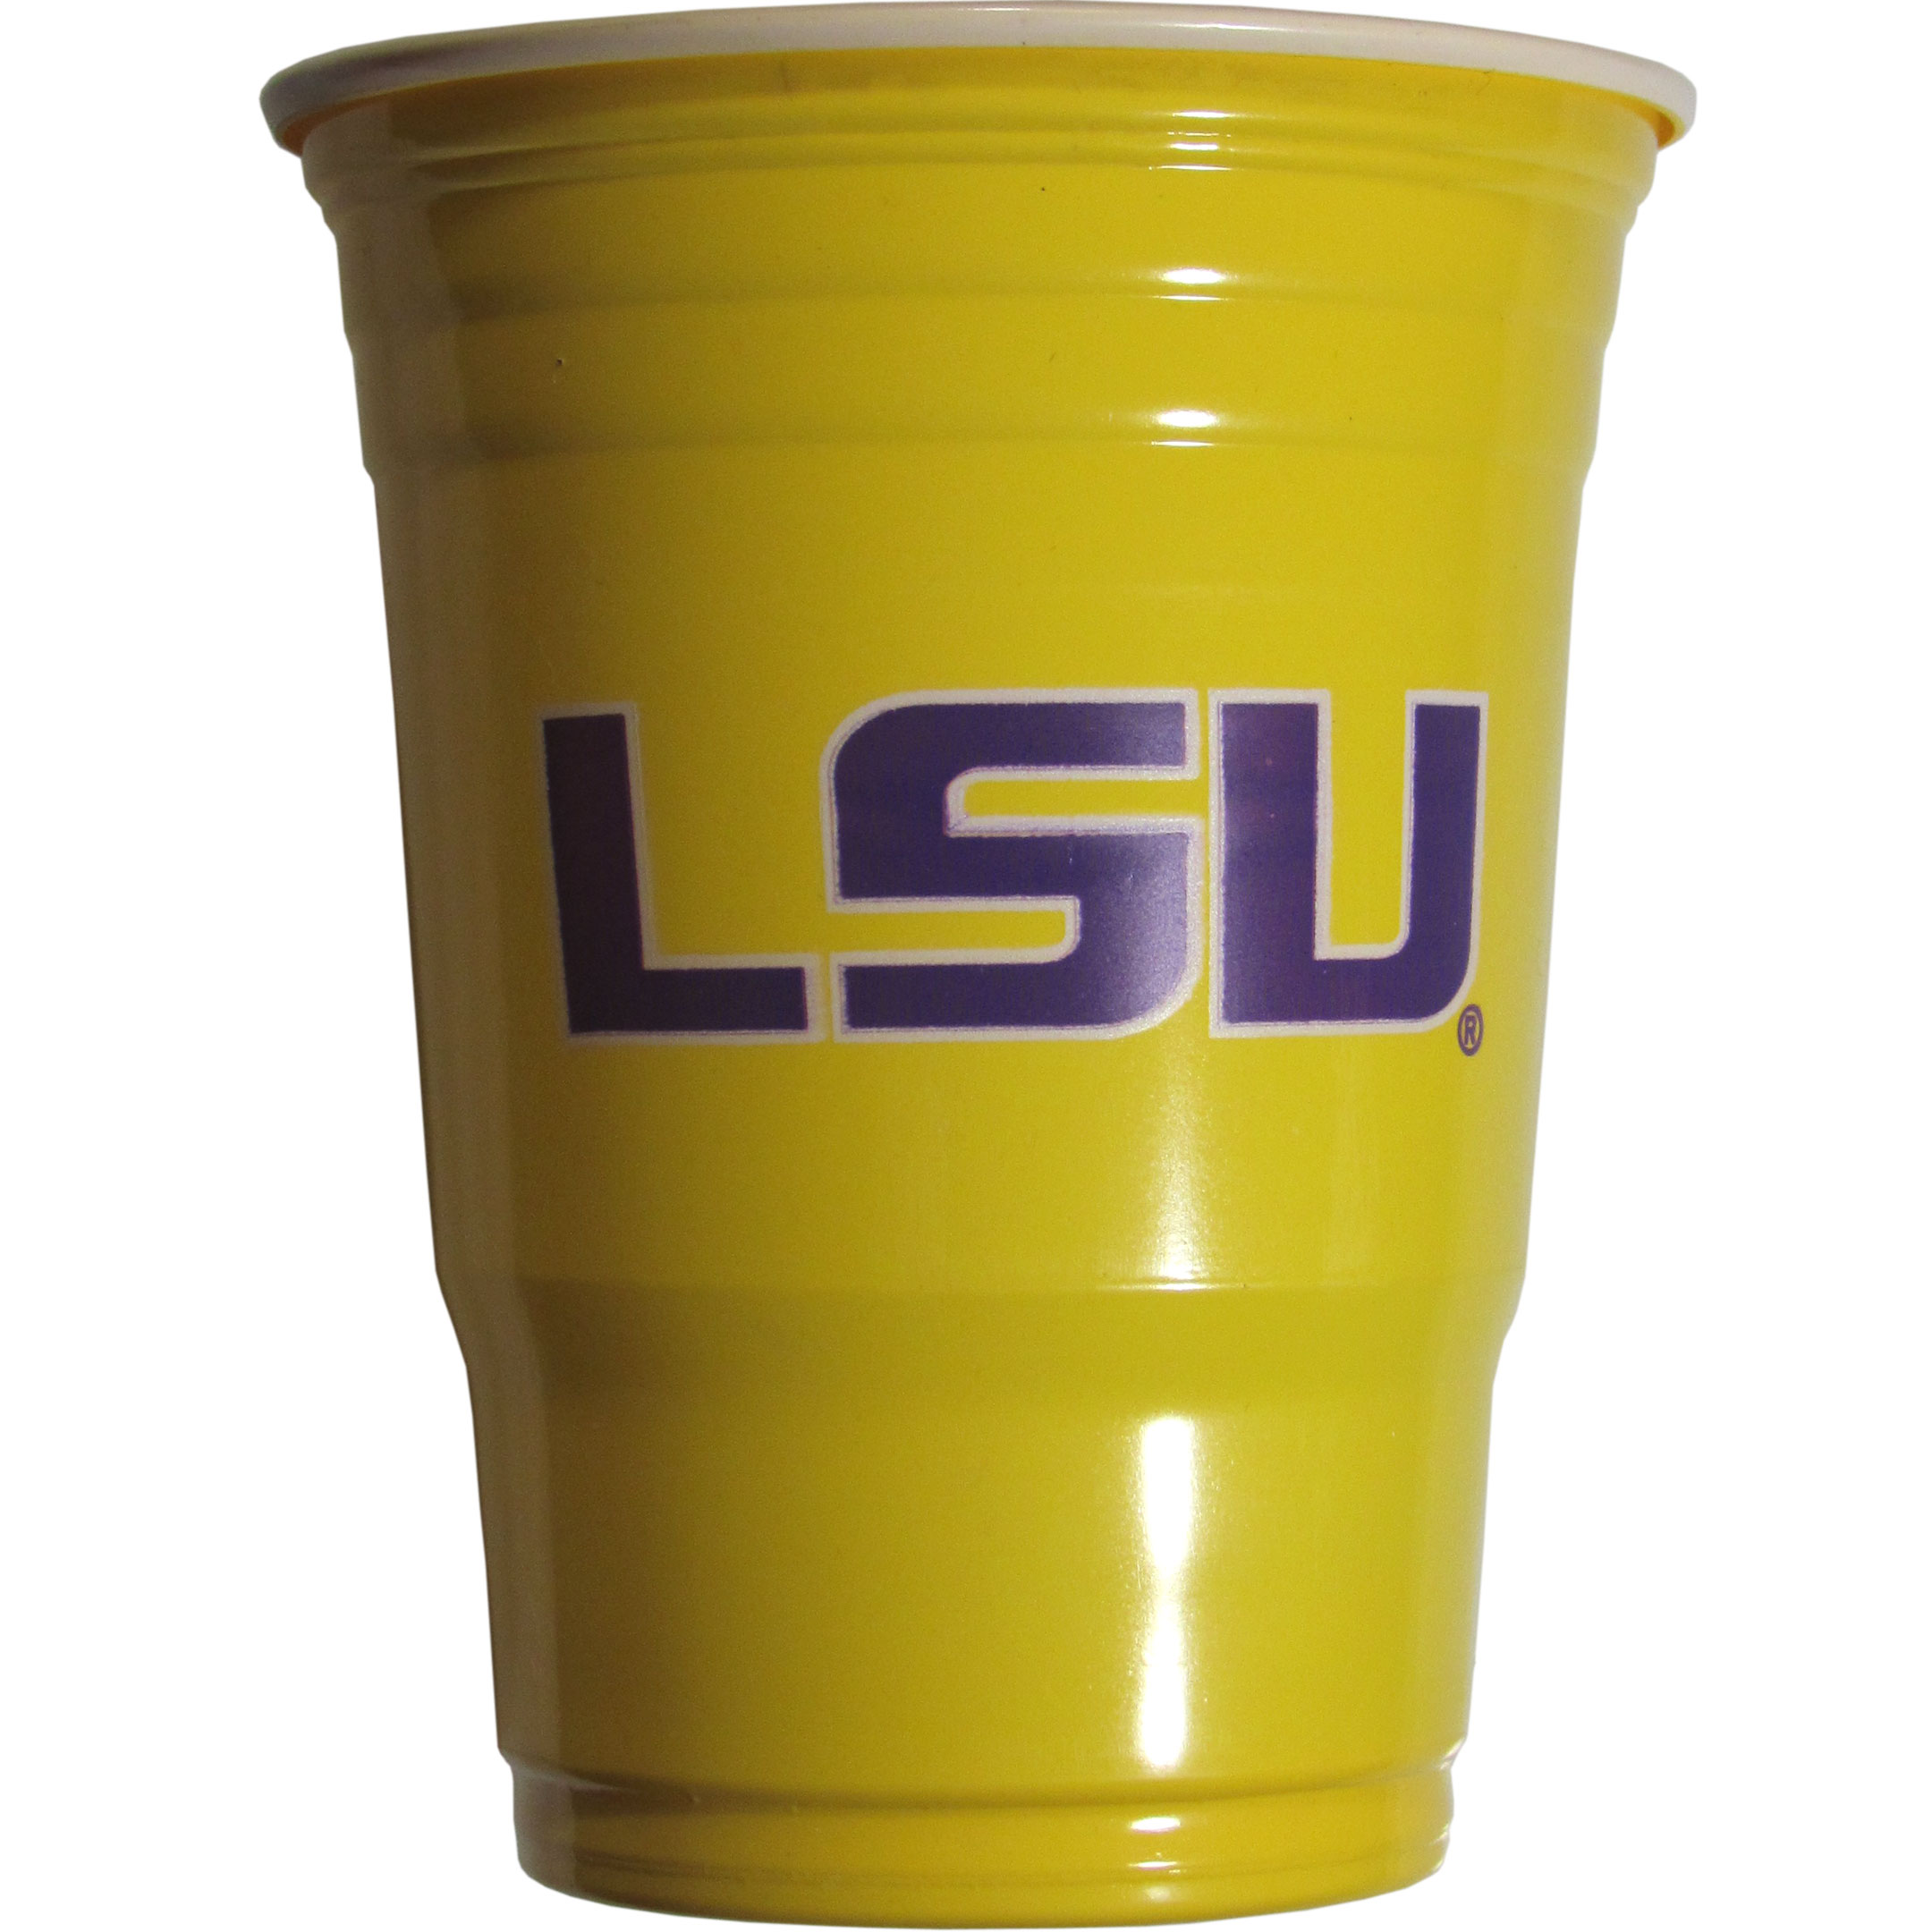 LSU Tigers Plastic Game Day Cups 2 sleeves of 18 (36 Cups) - Our 18 ounce game day cups are what every tailgating or backyard events needs! The cups feature a big LSU Tigers logo so you can show off your team pride. The popular 18 ounce size is perfect for drinks or ping pong balls! 2 sleeves of 18 cups, 36 cups in total.